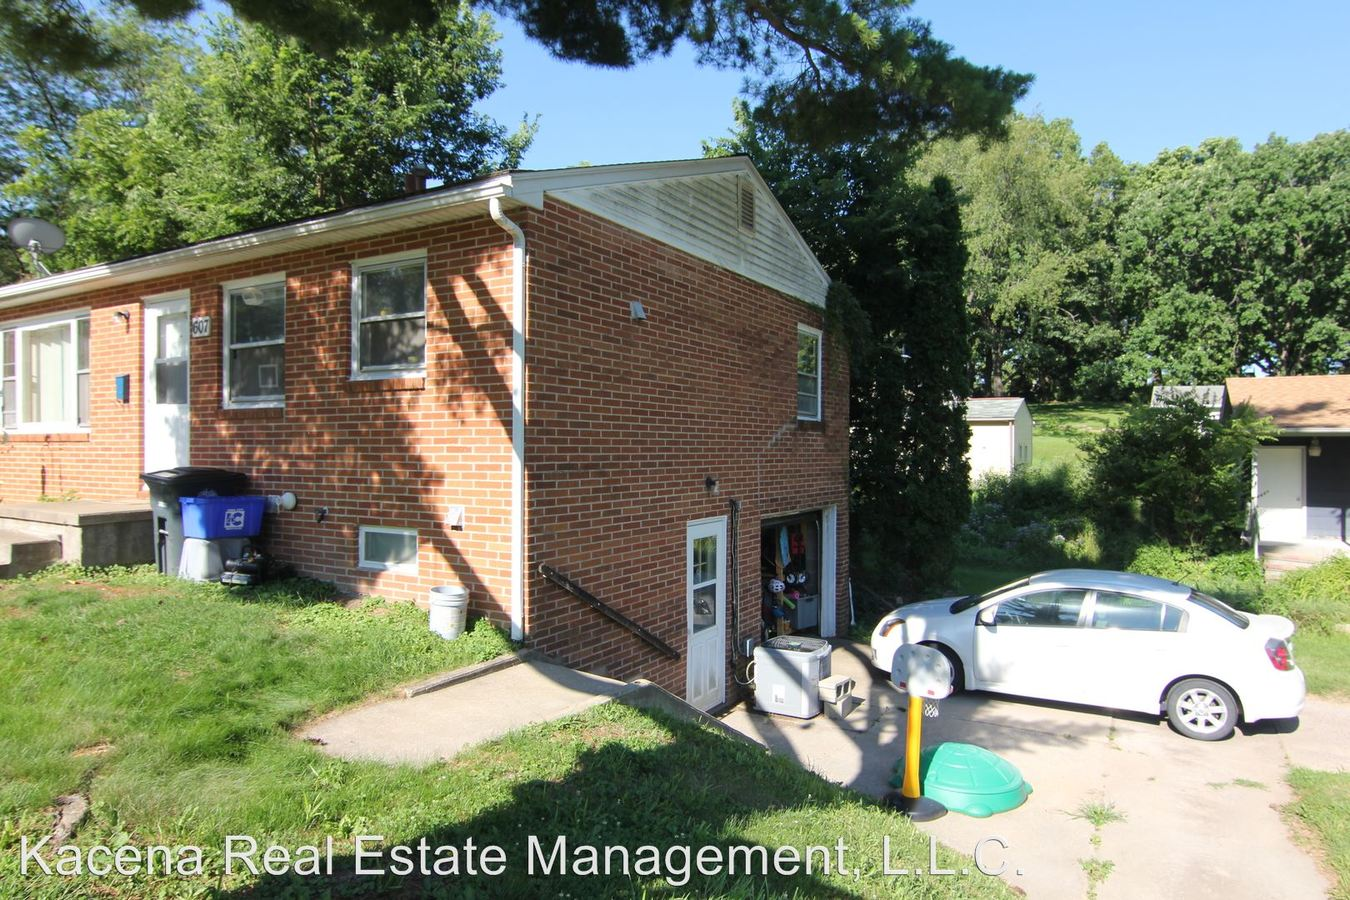 2 Bedrooms 1 Bathroom Apartment for rent at 605-607 Center St in Iowa City, IA